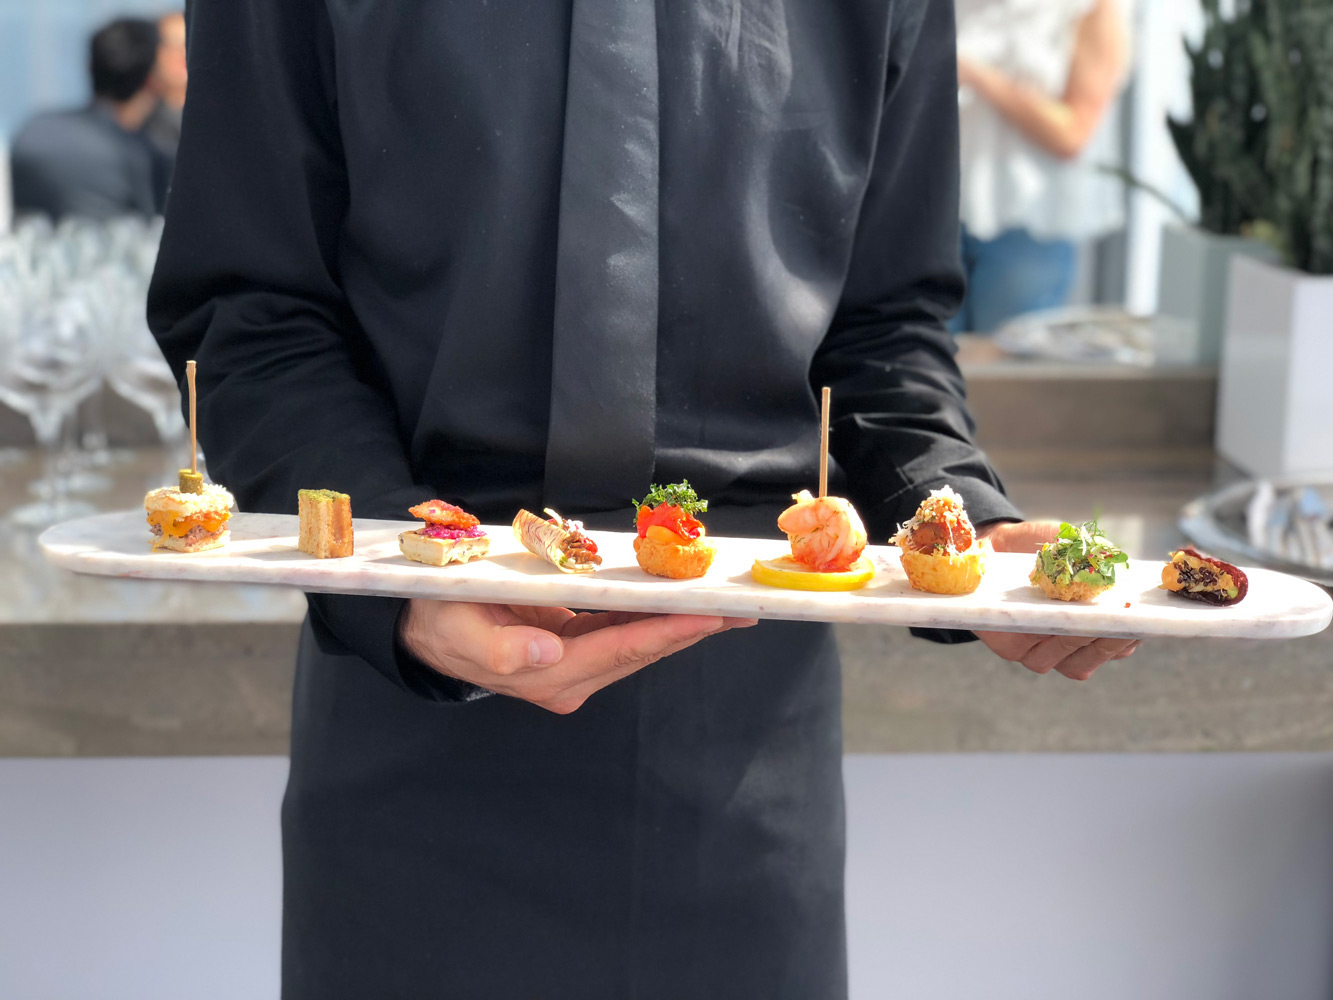 Tray of appetizers held by waiter